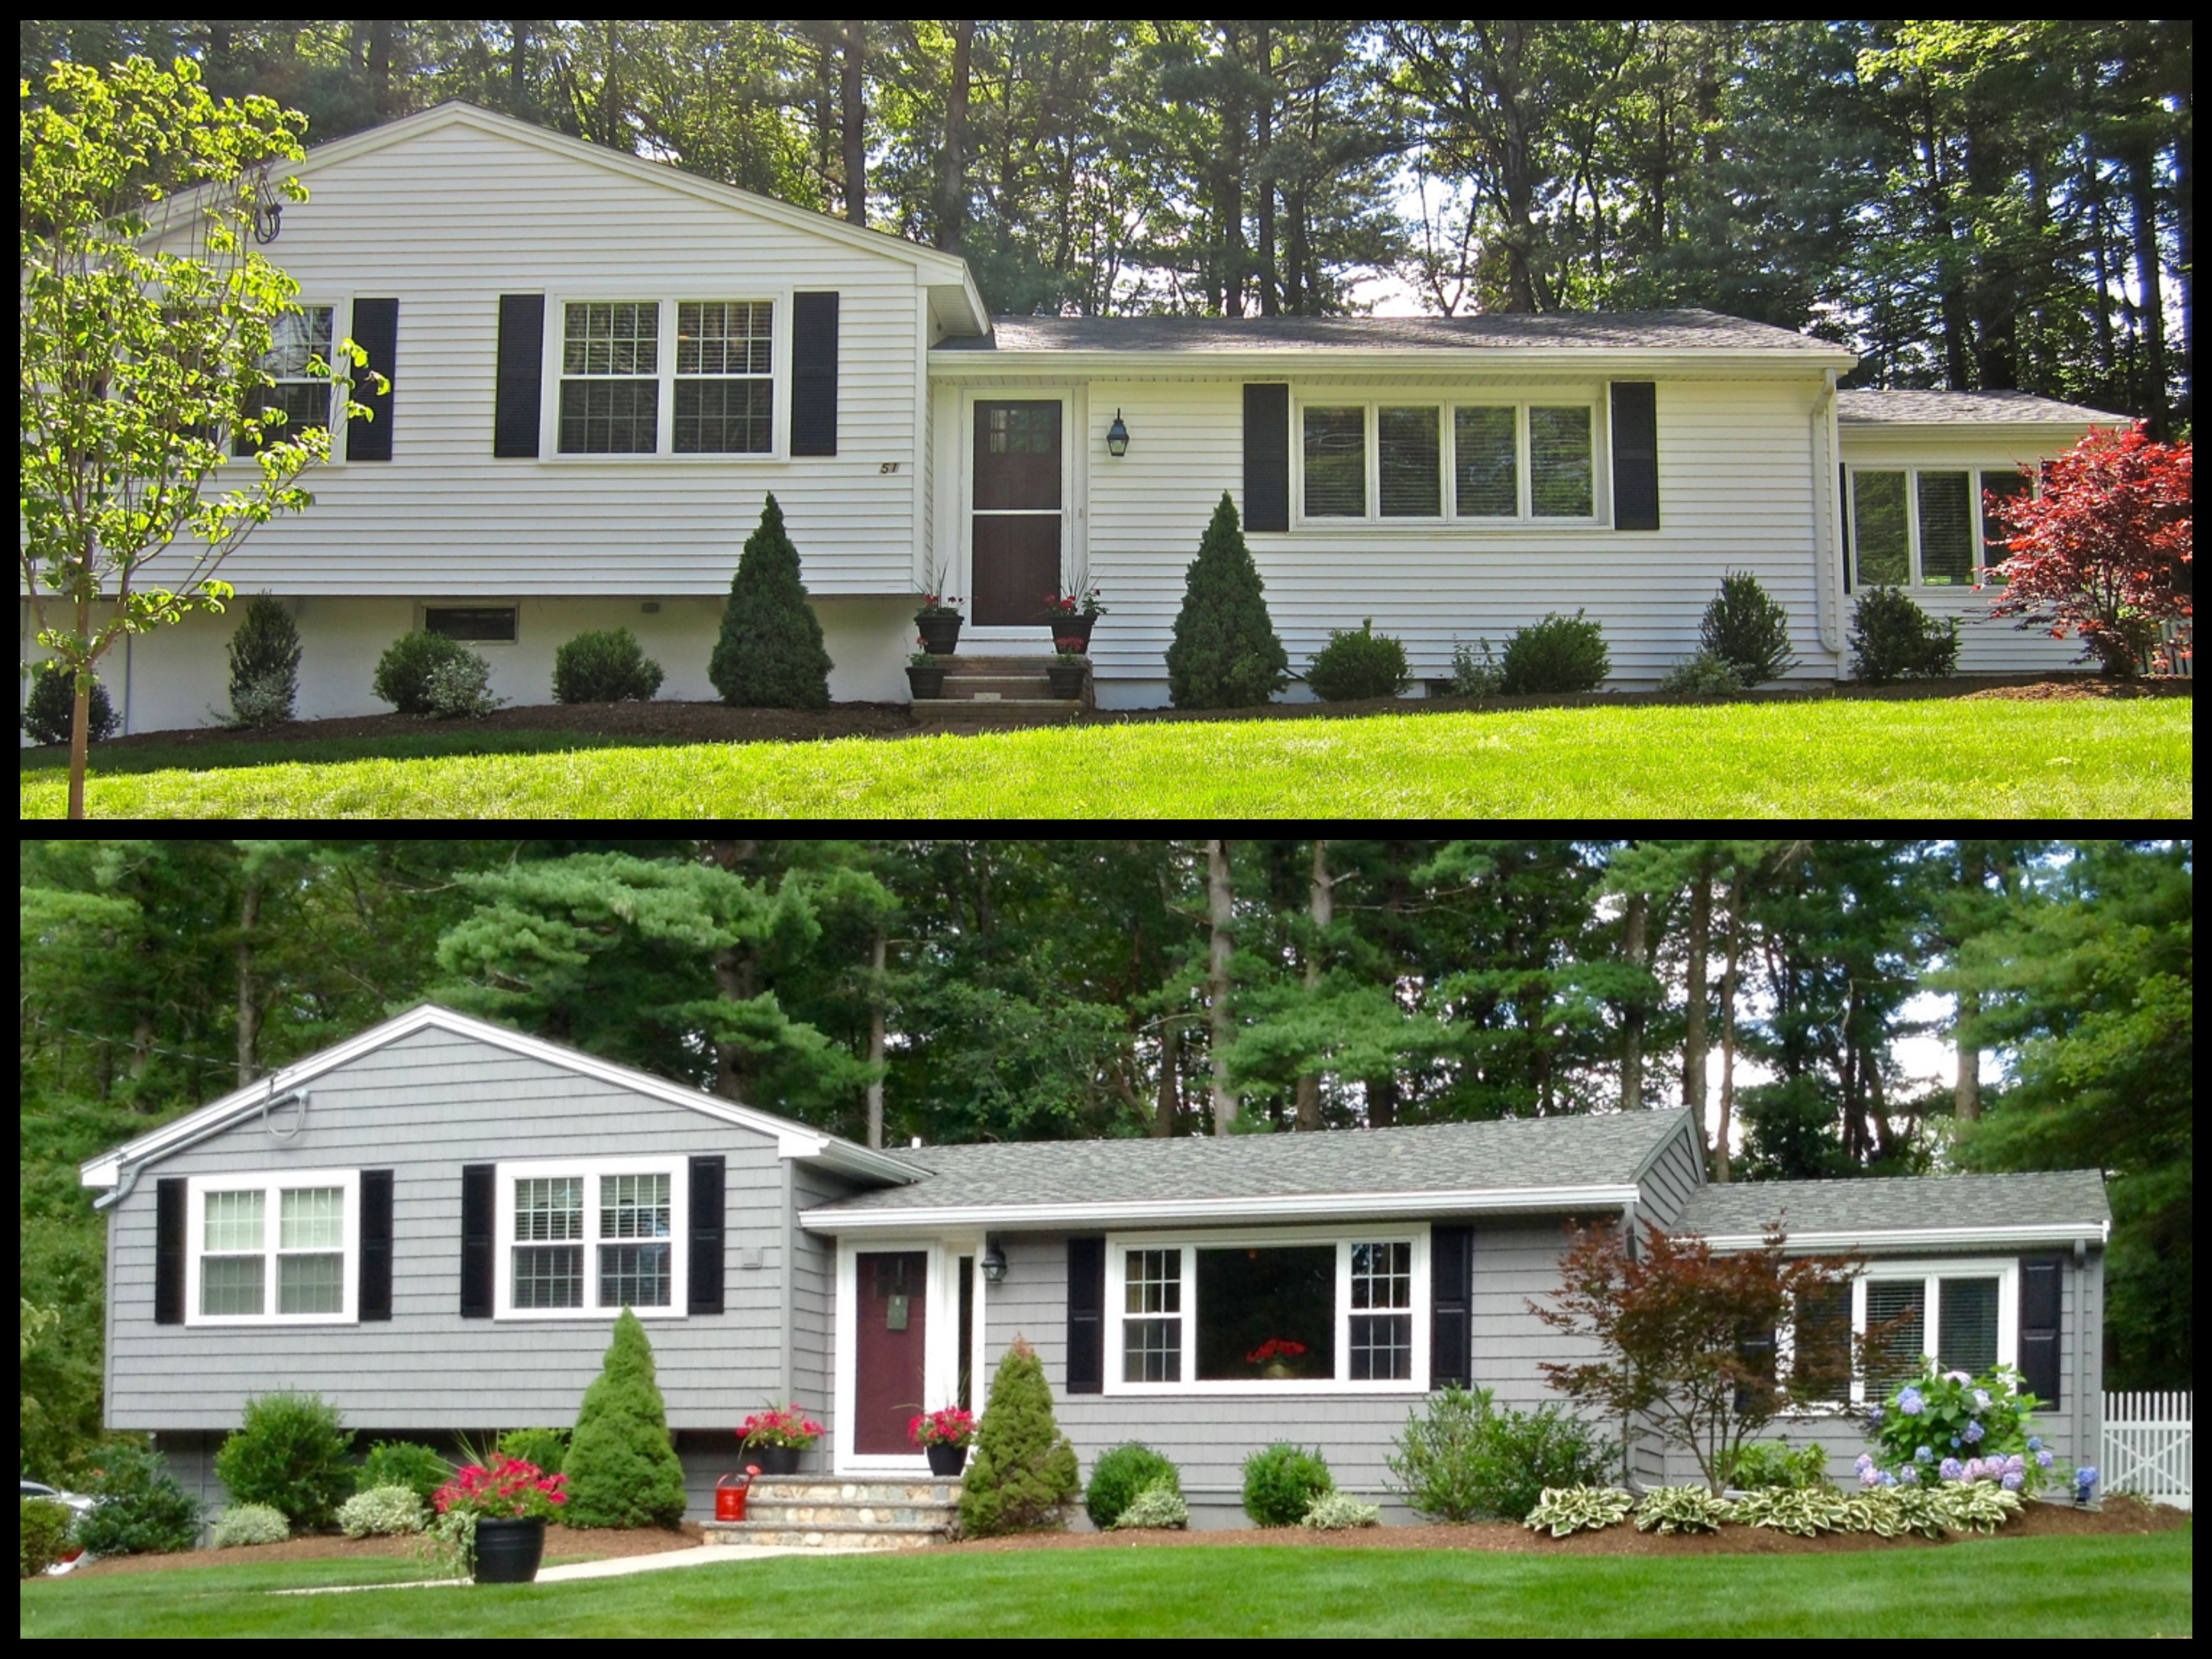 Before And After Using Certainteed Cedar Impressions Vinyl Siding In Charcoal Gray And Har Exterior House Renovation Vinyl House Home Remodeling Contractors